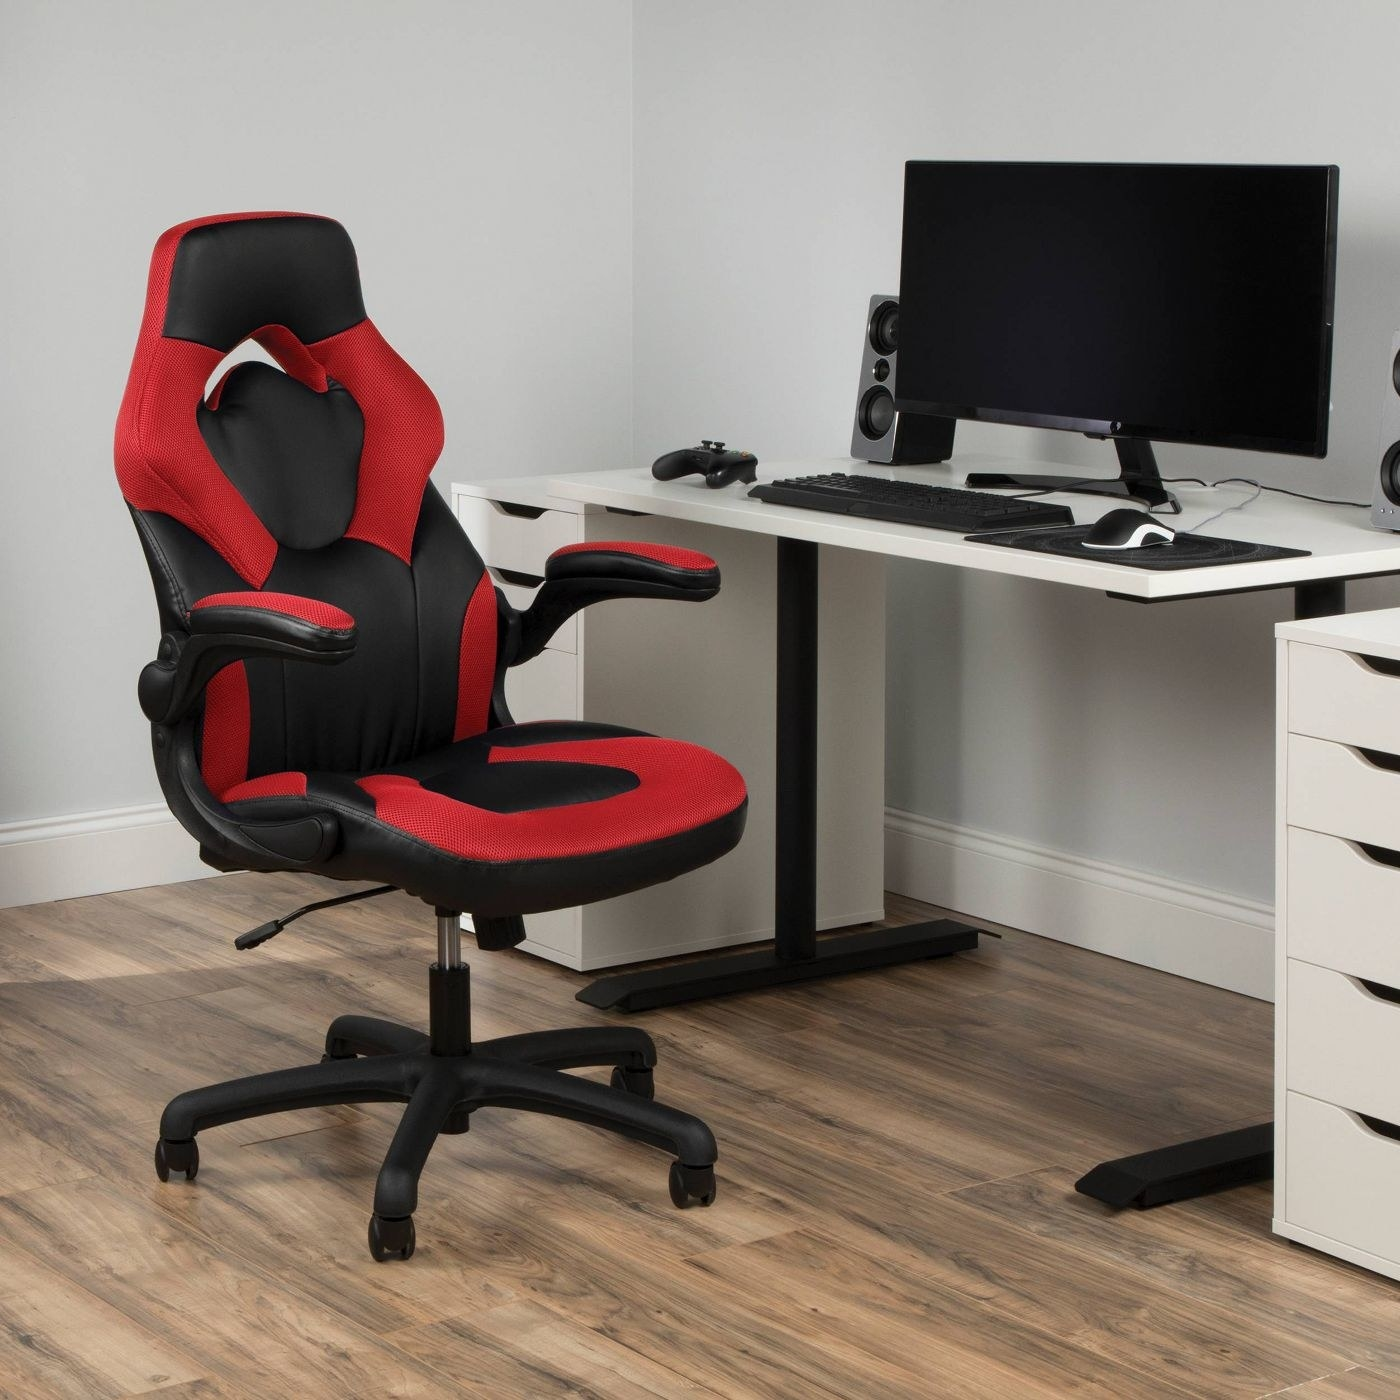 Red gaming chair next to white desk with black computer monitor, keyboard, and gaming console